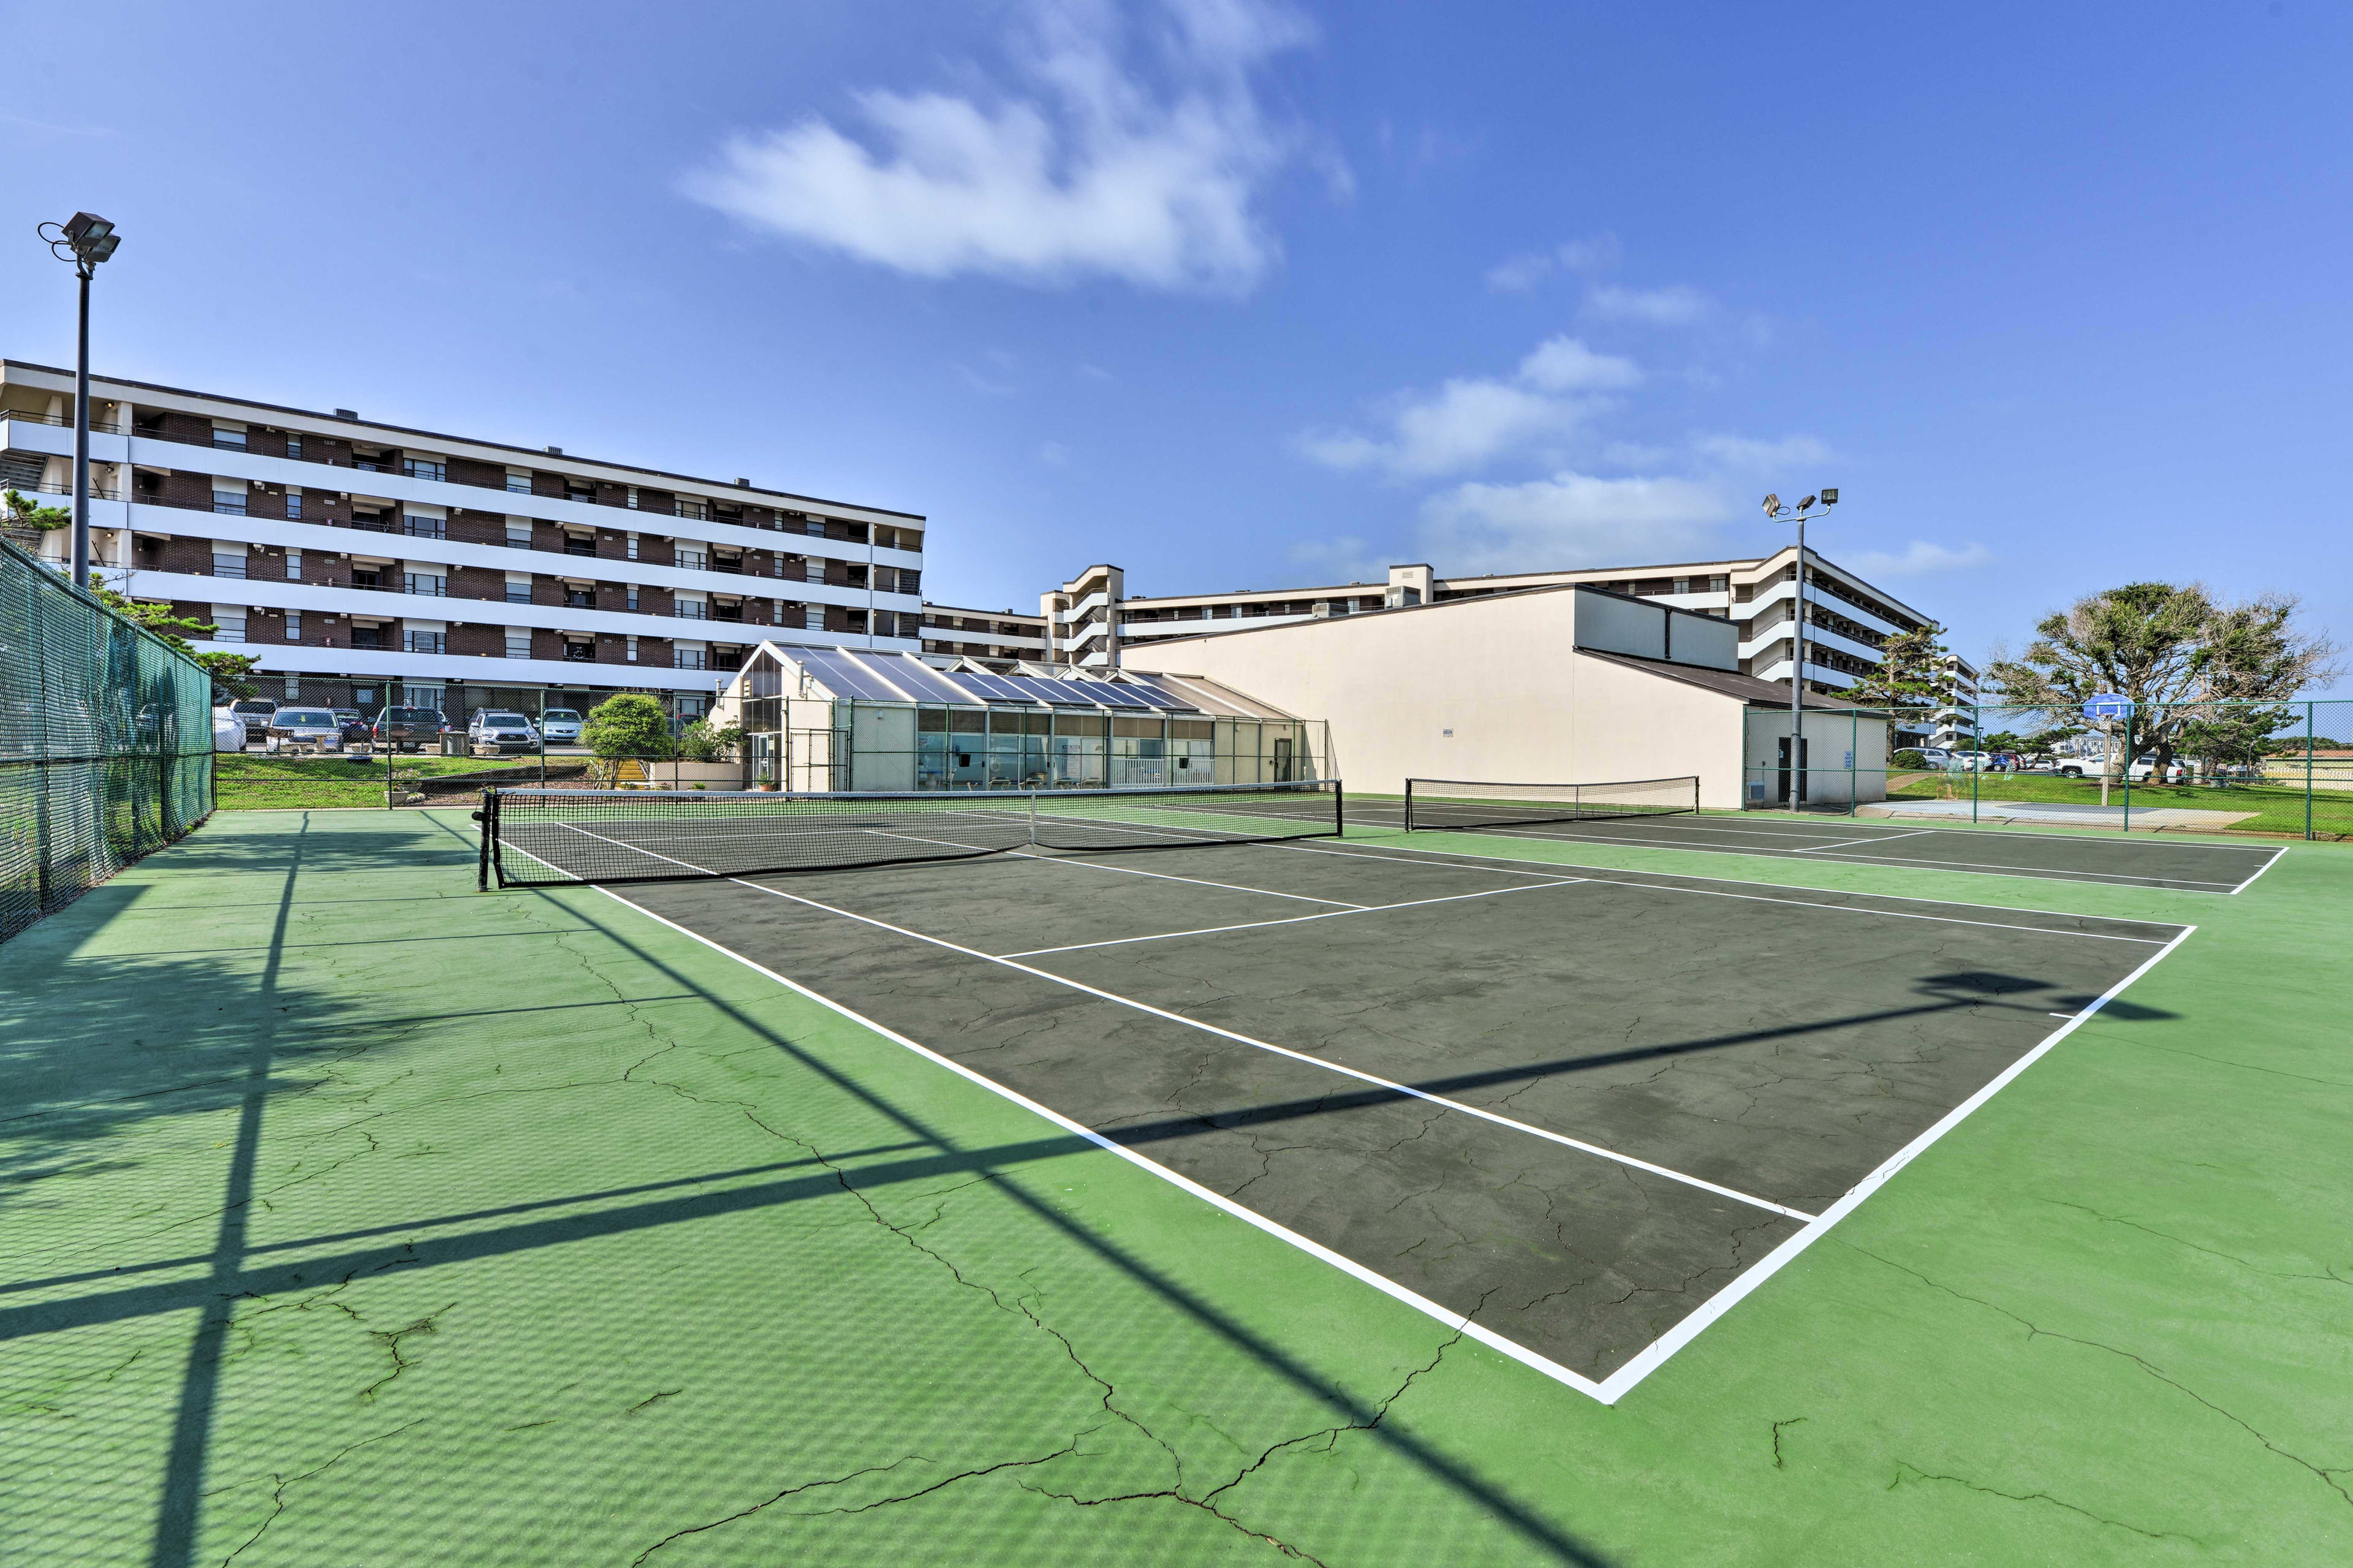 Start a friendly game of tennis with your loved ones.